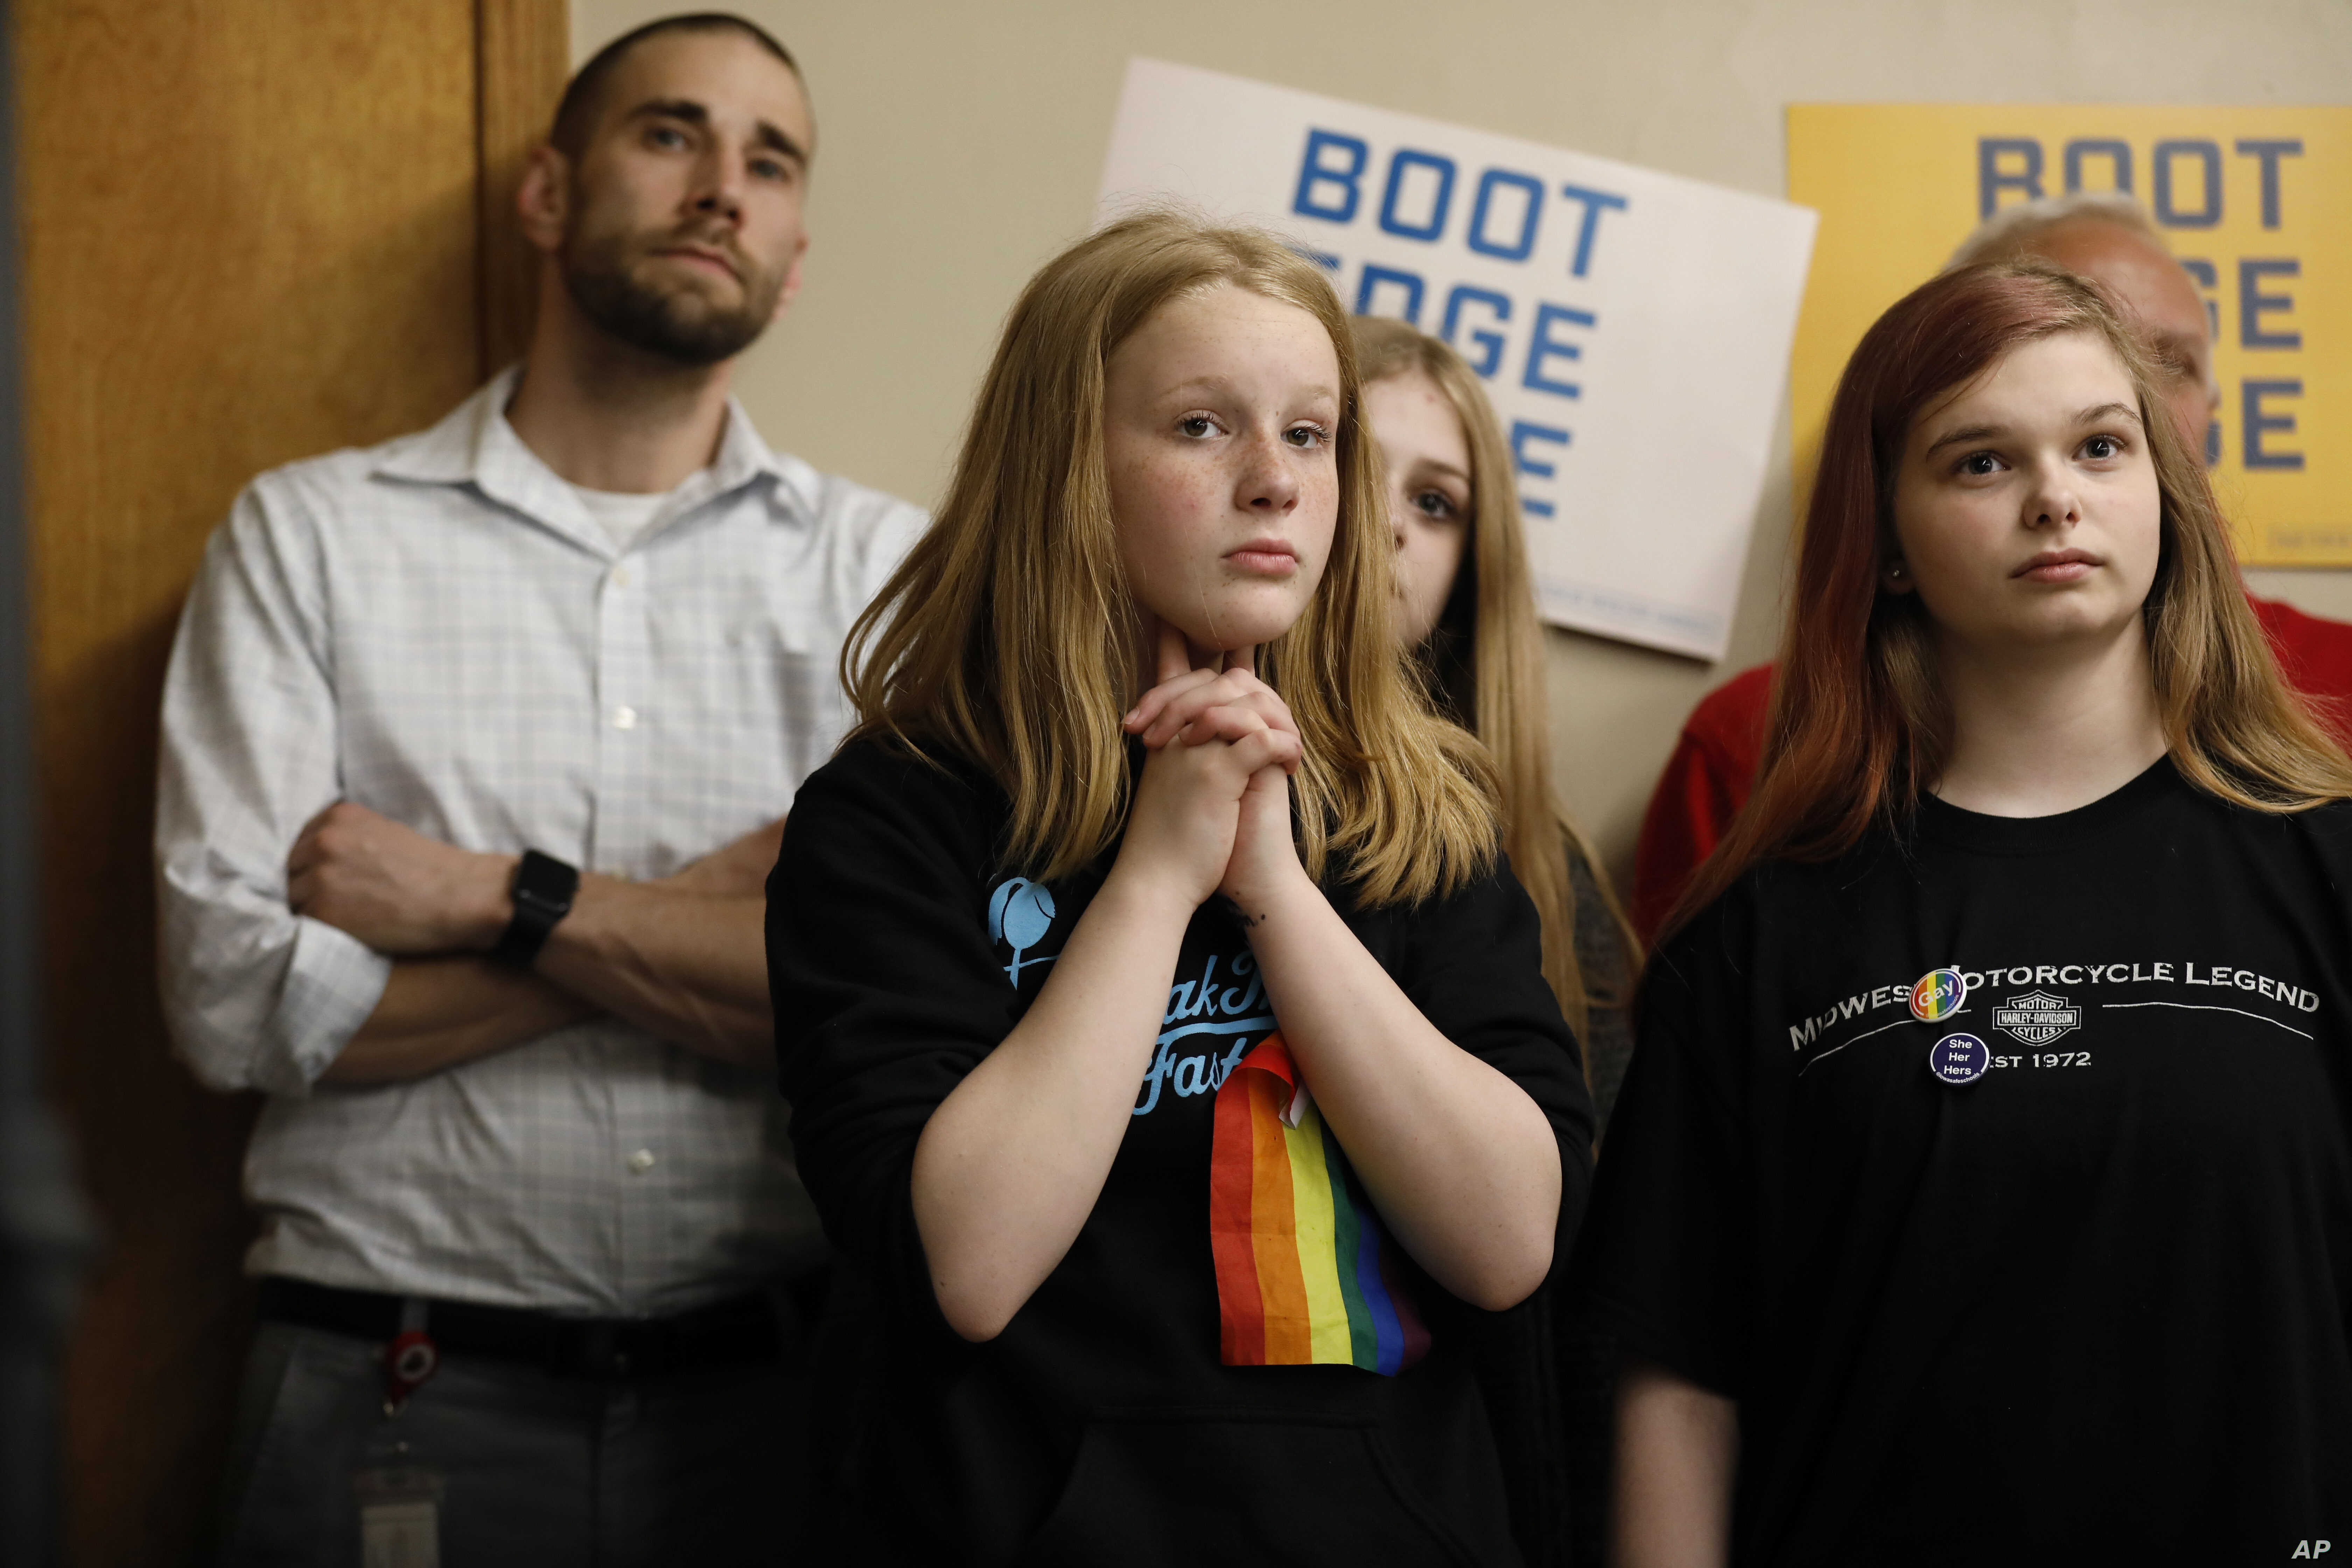 Audience members listen as 2020 Democratic presidential candidate South Bend Mayor Pete Buttigieg speaks during a town hall meeting in Fort Dodge, Iowa, April 16, 2019.